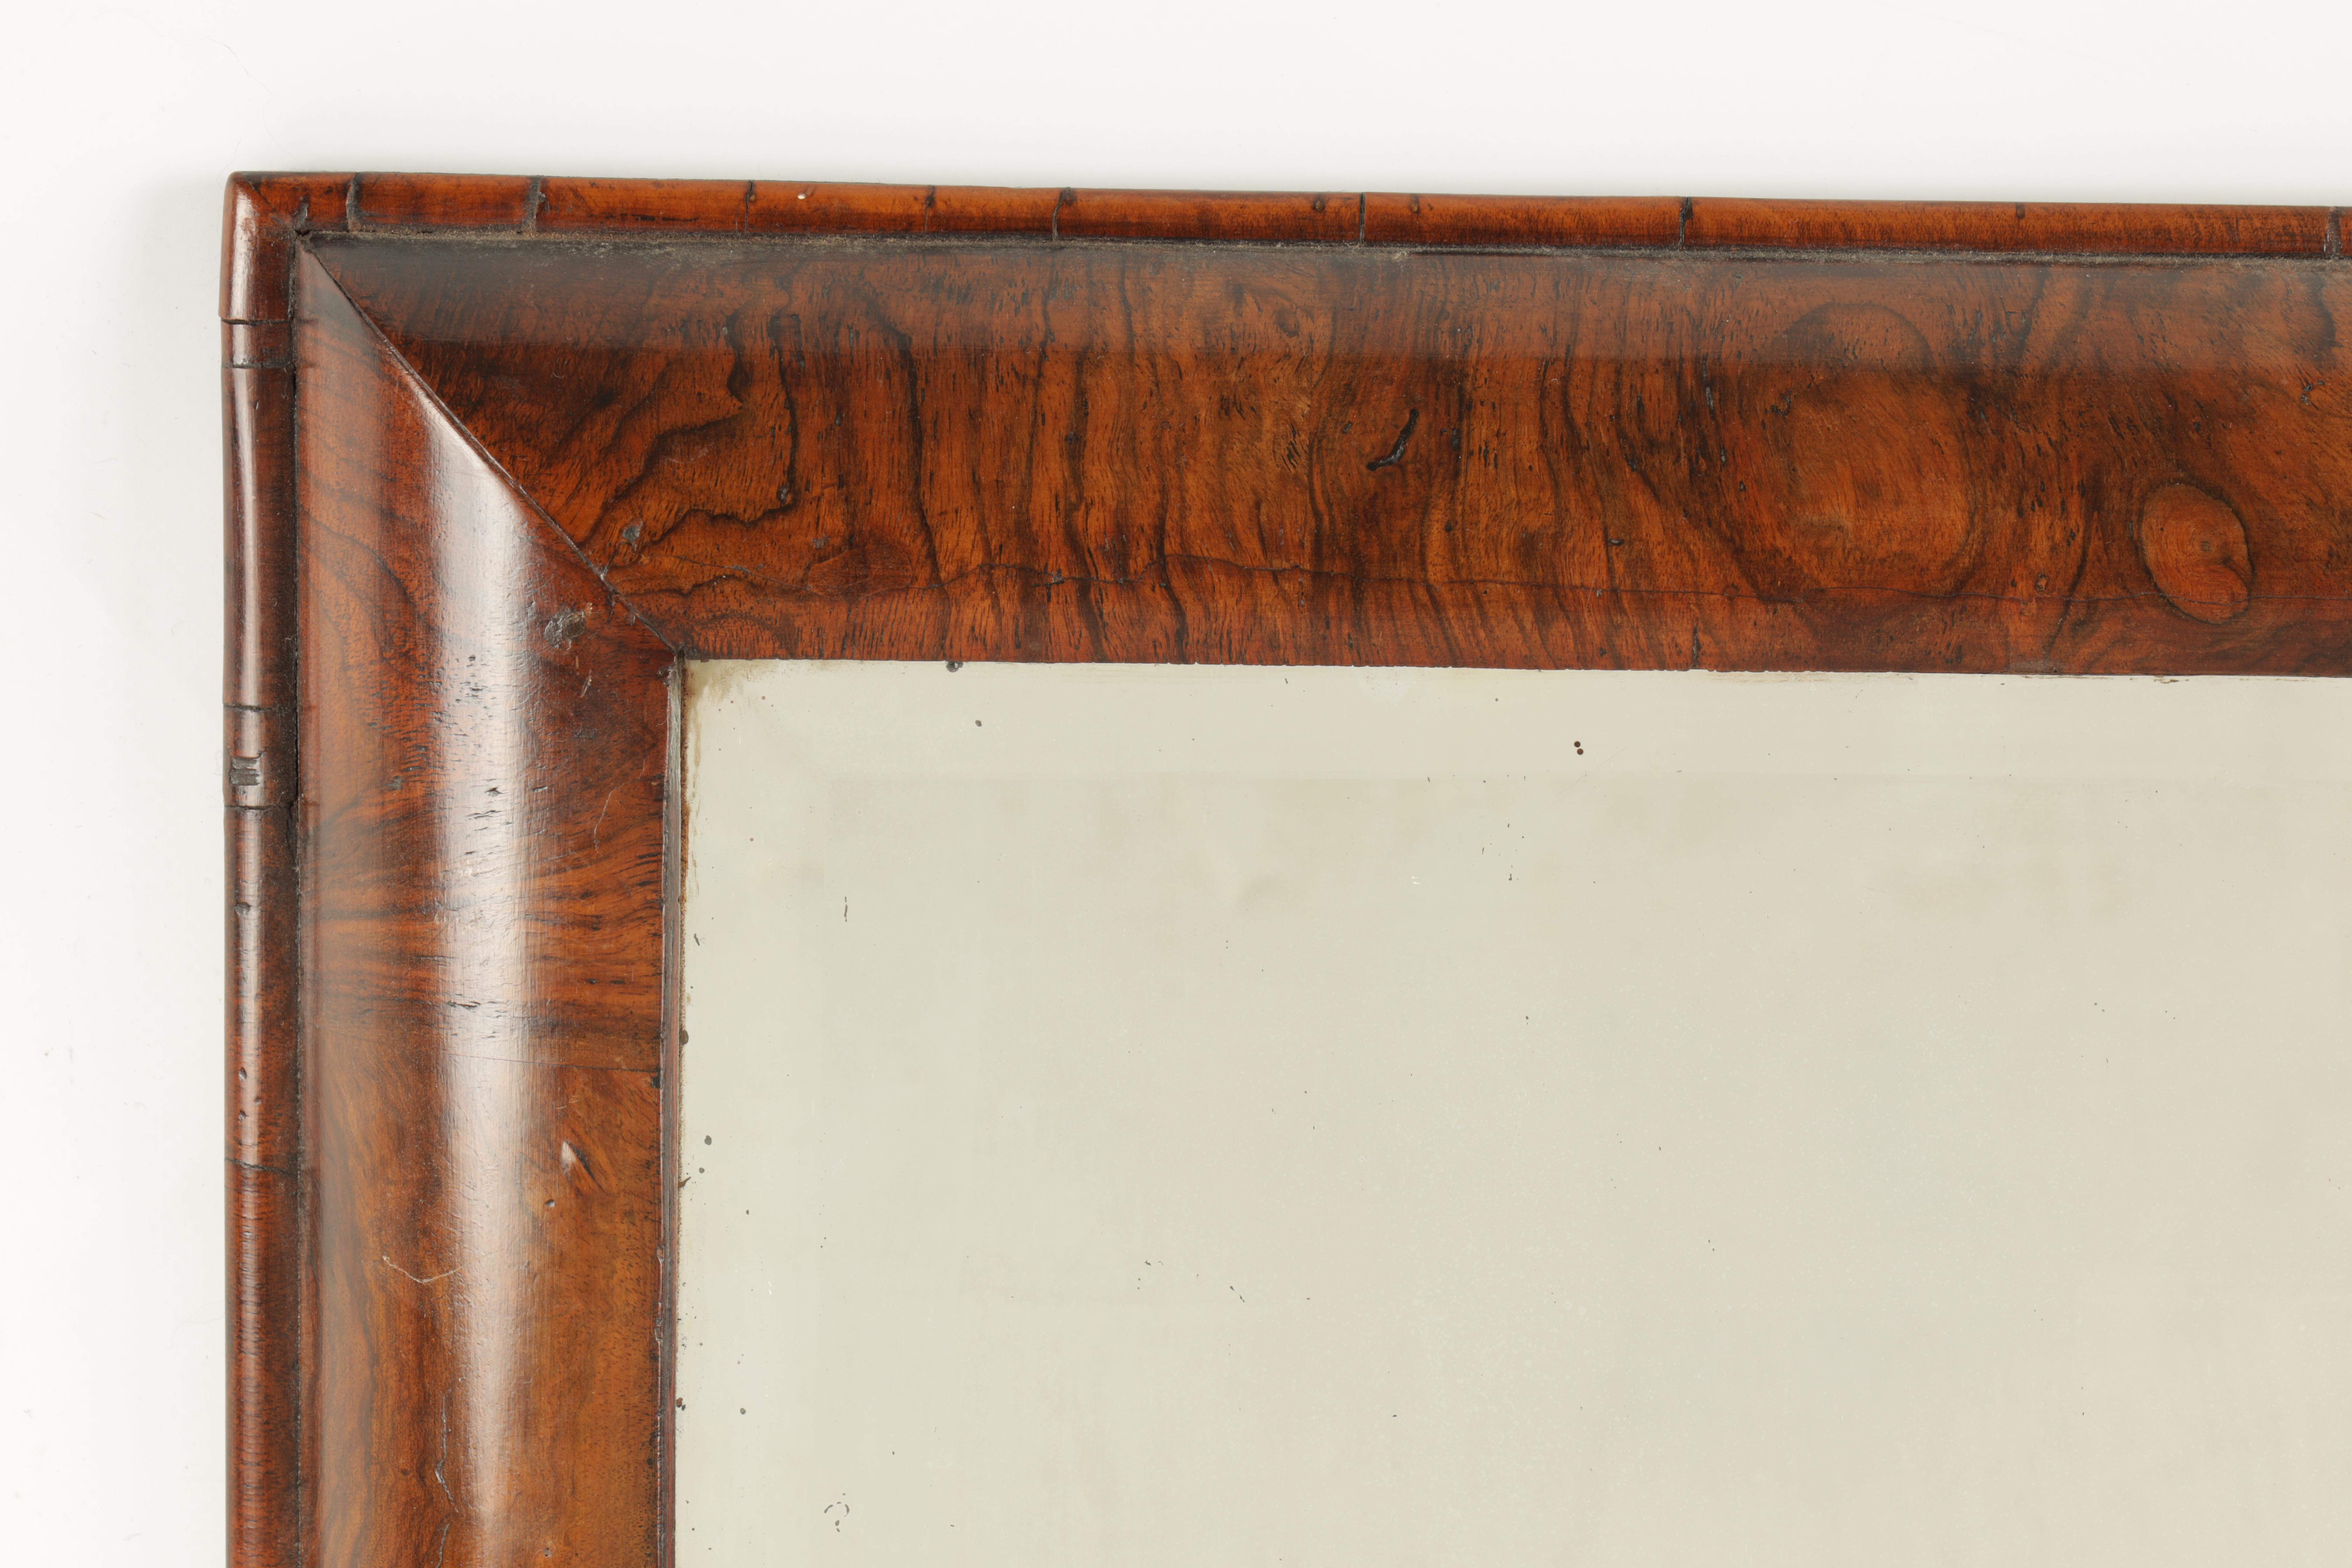 A WILLIAM AND MARY FIGURED WALNUT D SHAPED HANGING MIRROR fitted with original bevelled mirror - Image 3 of 5